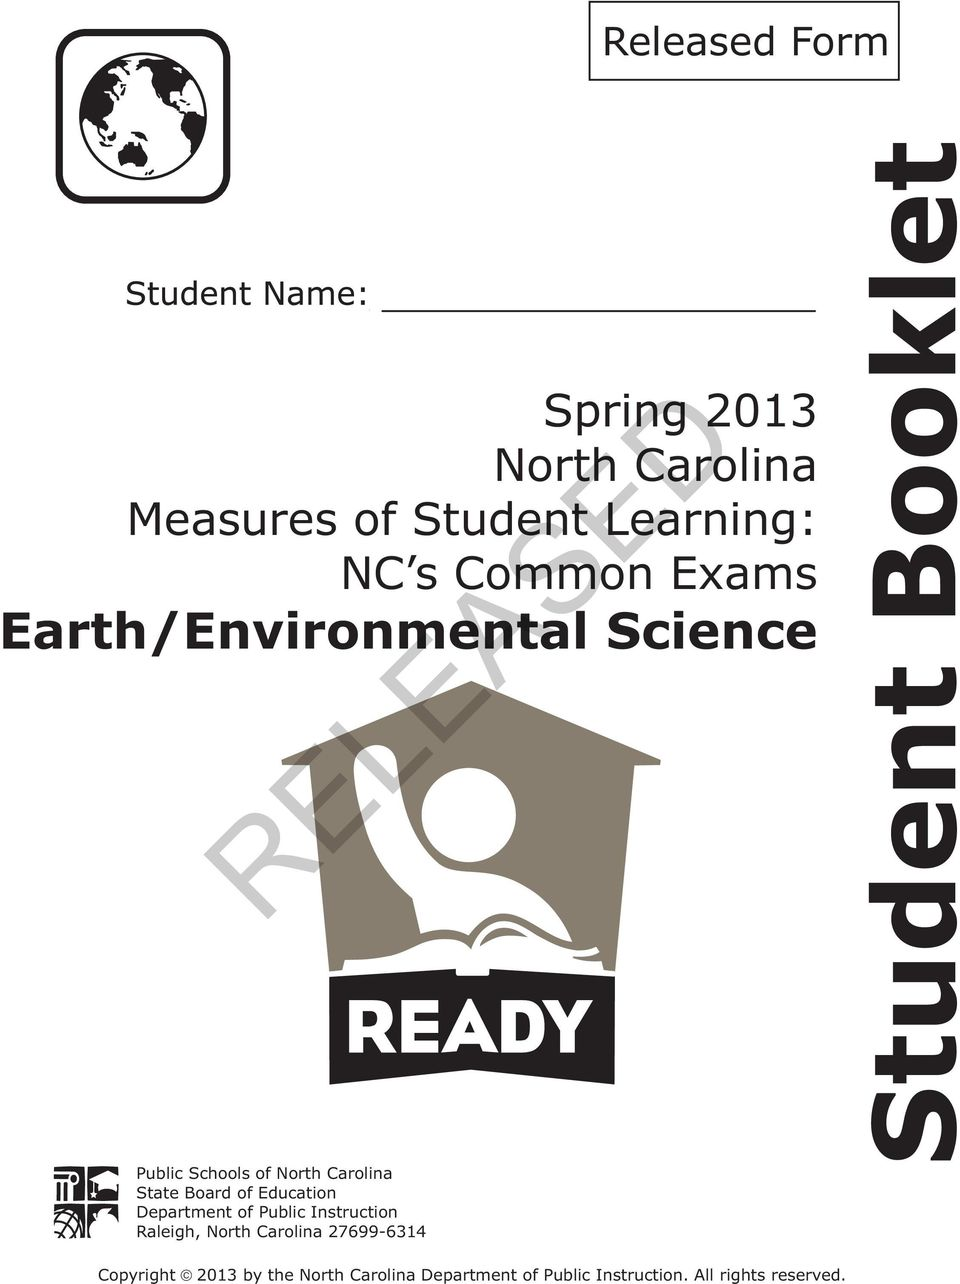 Education epartment of Public Instruction Raleigh, North arolina 27699-6314 Student